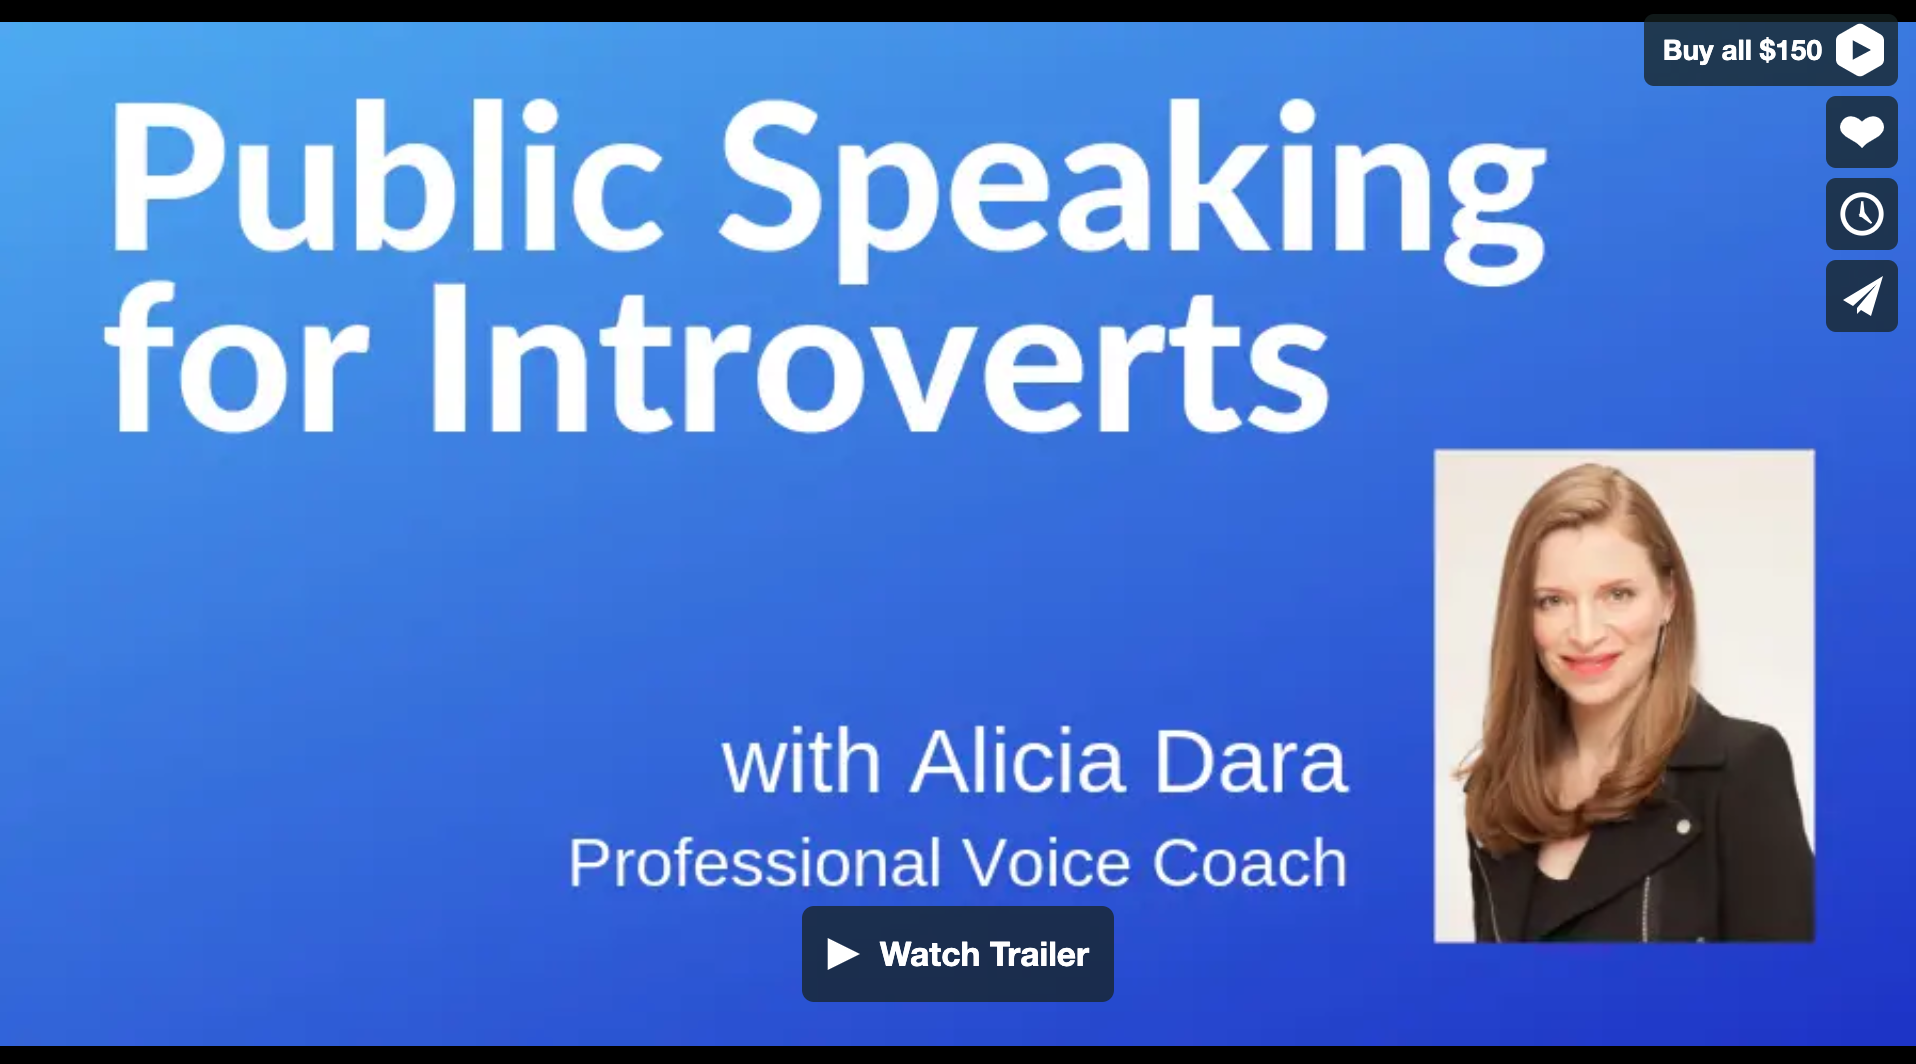 Public Speaking for Introverts is Here! - Introverts need special skills to overcome physical, mental, and emotional issues that can arise with public speaking and presentations. Alicia Dara has helped thousands of people find their voice, speak up, and get heard. In 45 minutes you'll learn powerful public speaking skills, a practice routine for your voice going forward, and valuable strategies that can help over come the intense mental, physical, and emotional symptoms of nervousness that introverts experience like shaking, breathlessness, and